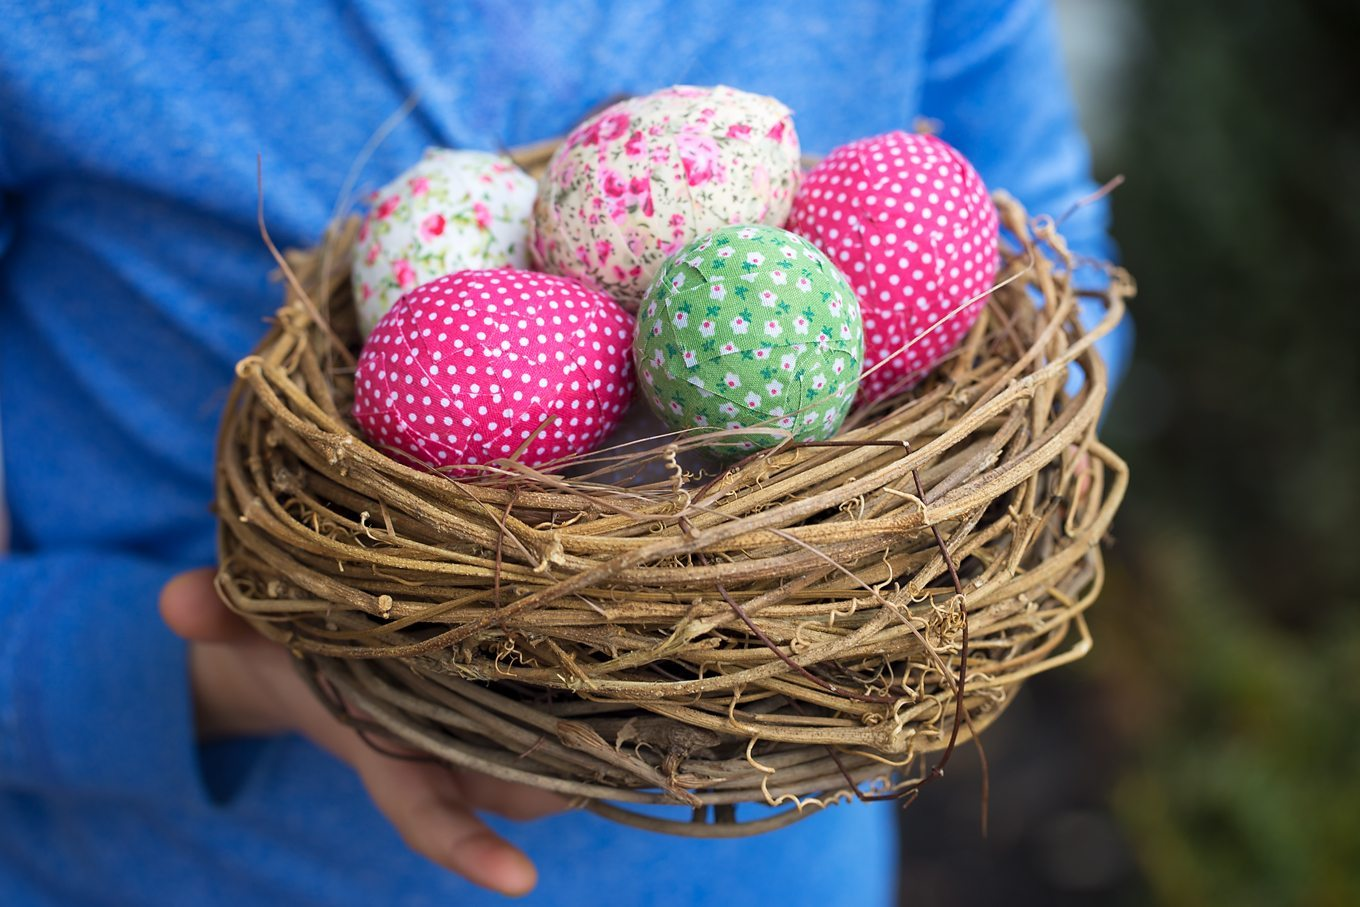 Loving these colorful shabby chic inspired Easter eggs! They are a fun Easter craft for kids too!